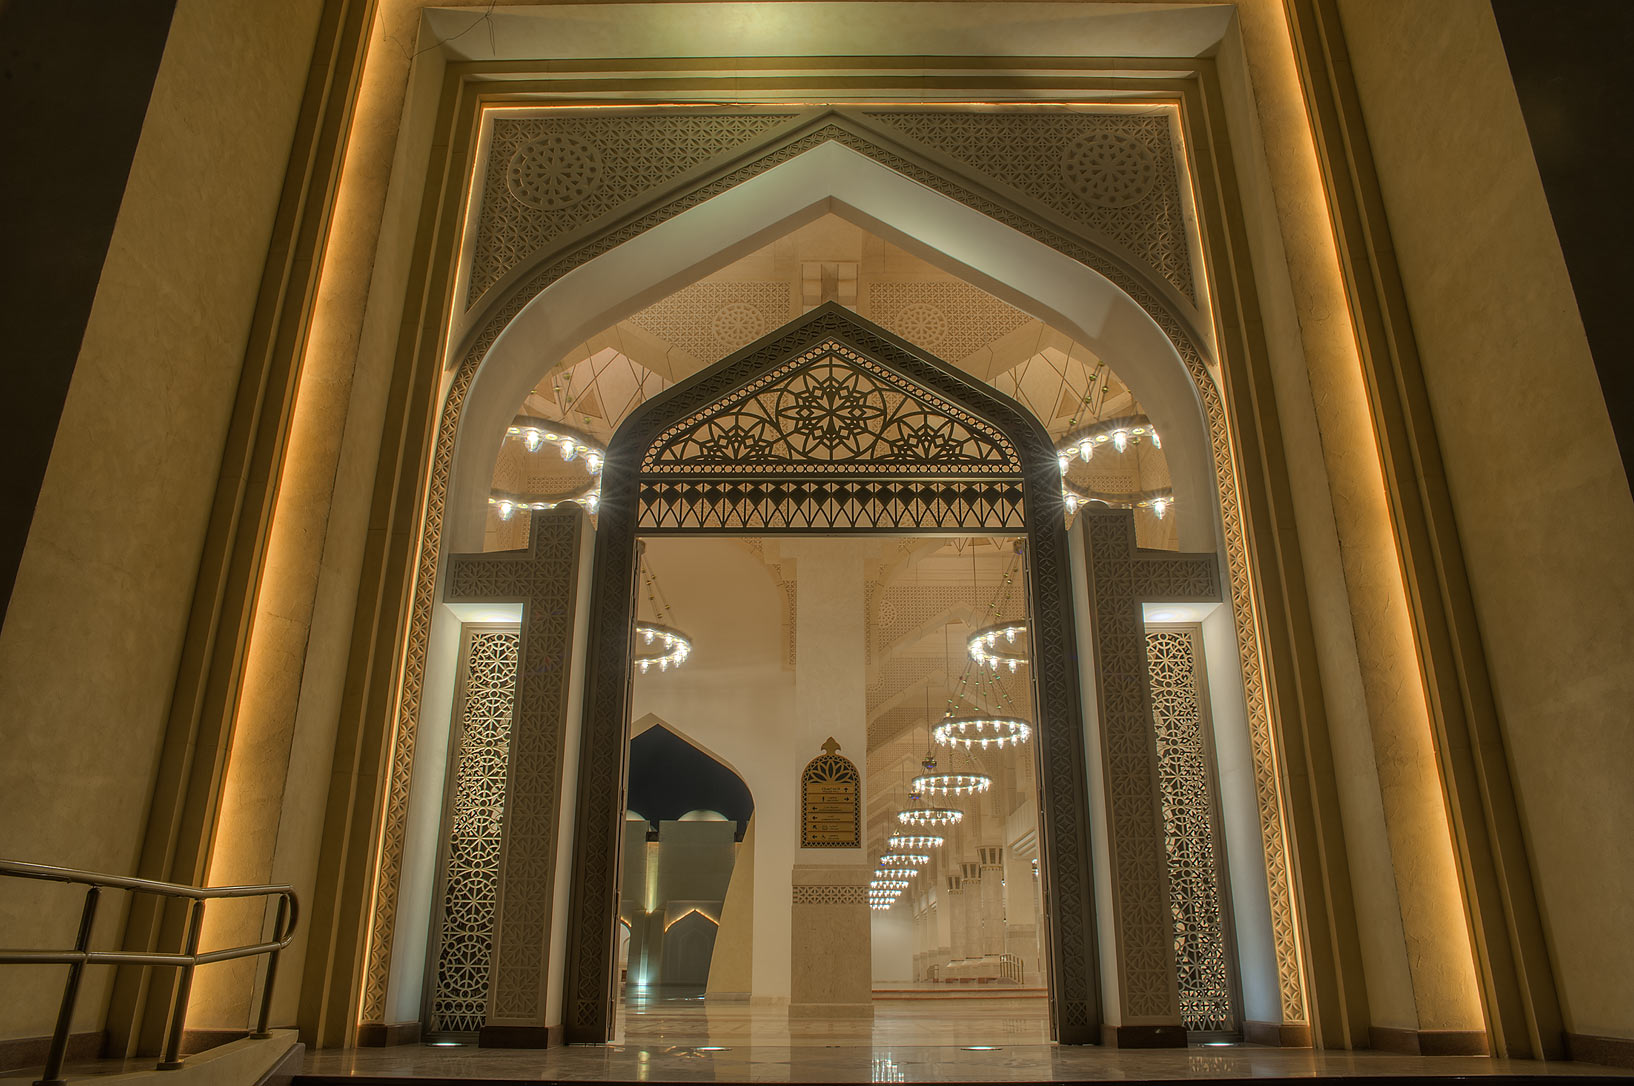 Woman's gate of State Mosque (Sheikh Muhammad Ibn Abdul Wahhab Mosque). Doha, Qatar